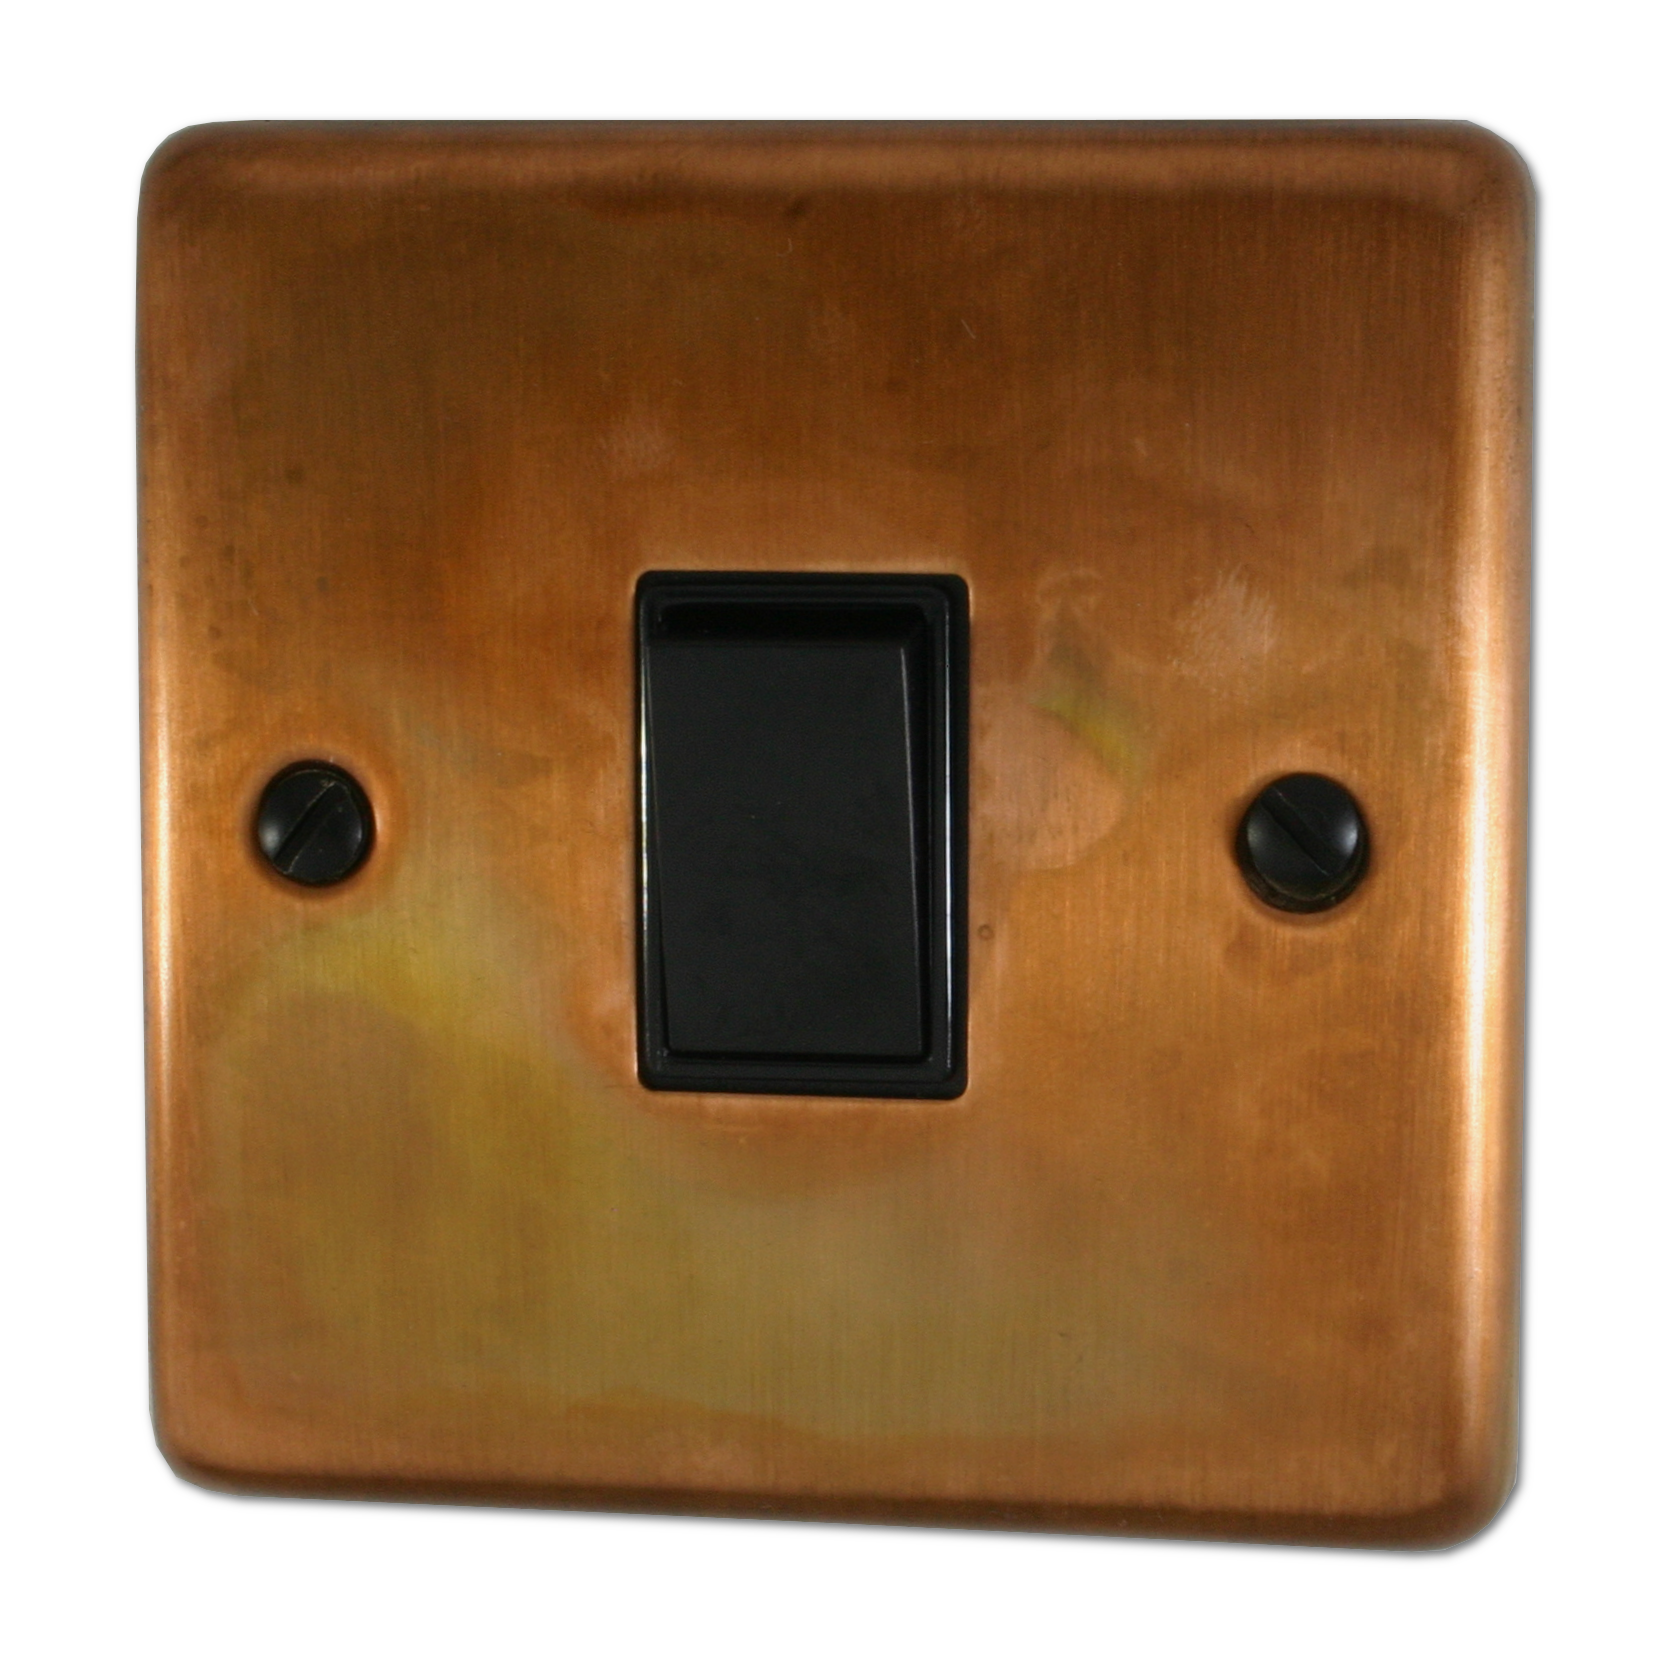 Tarnished Copper Sockets and Switches